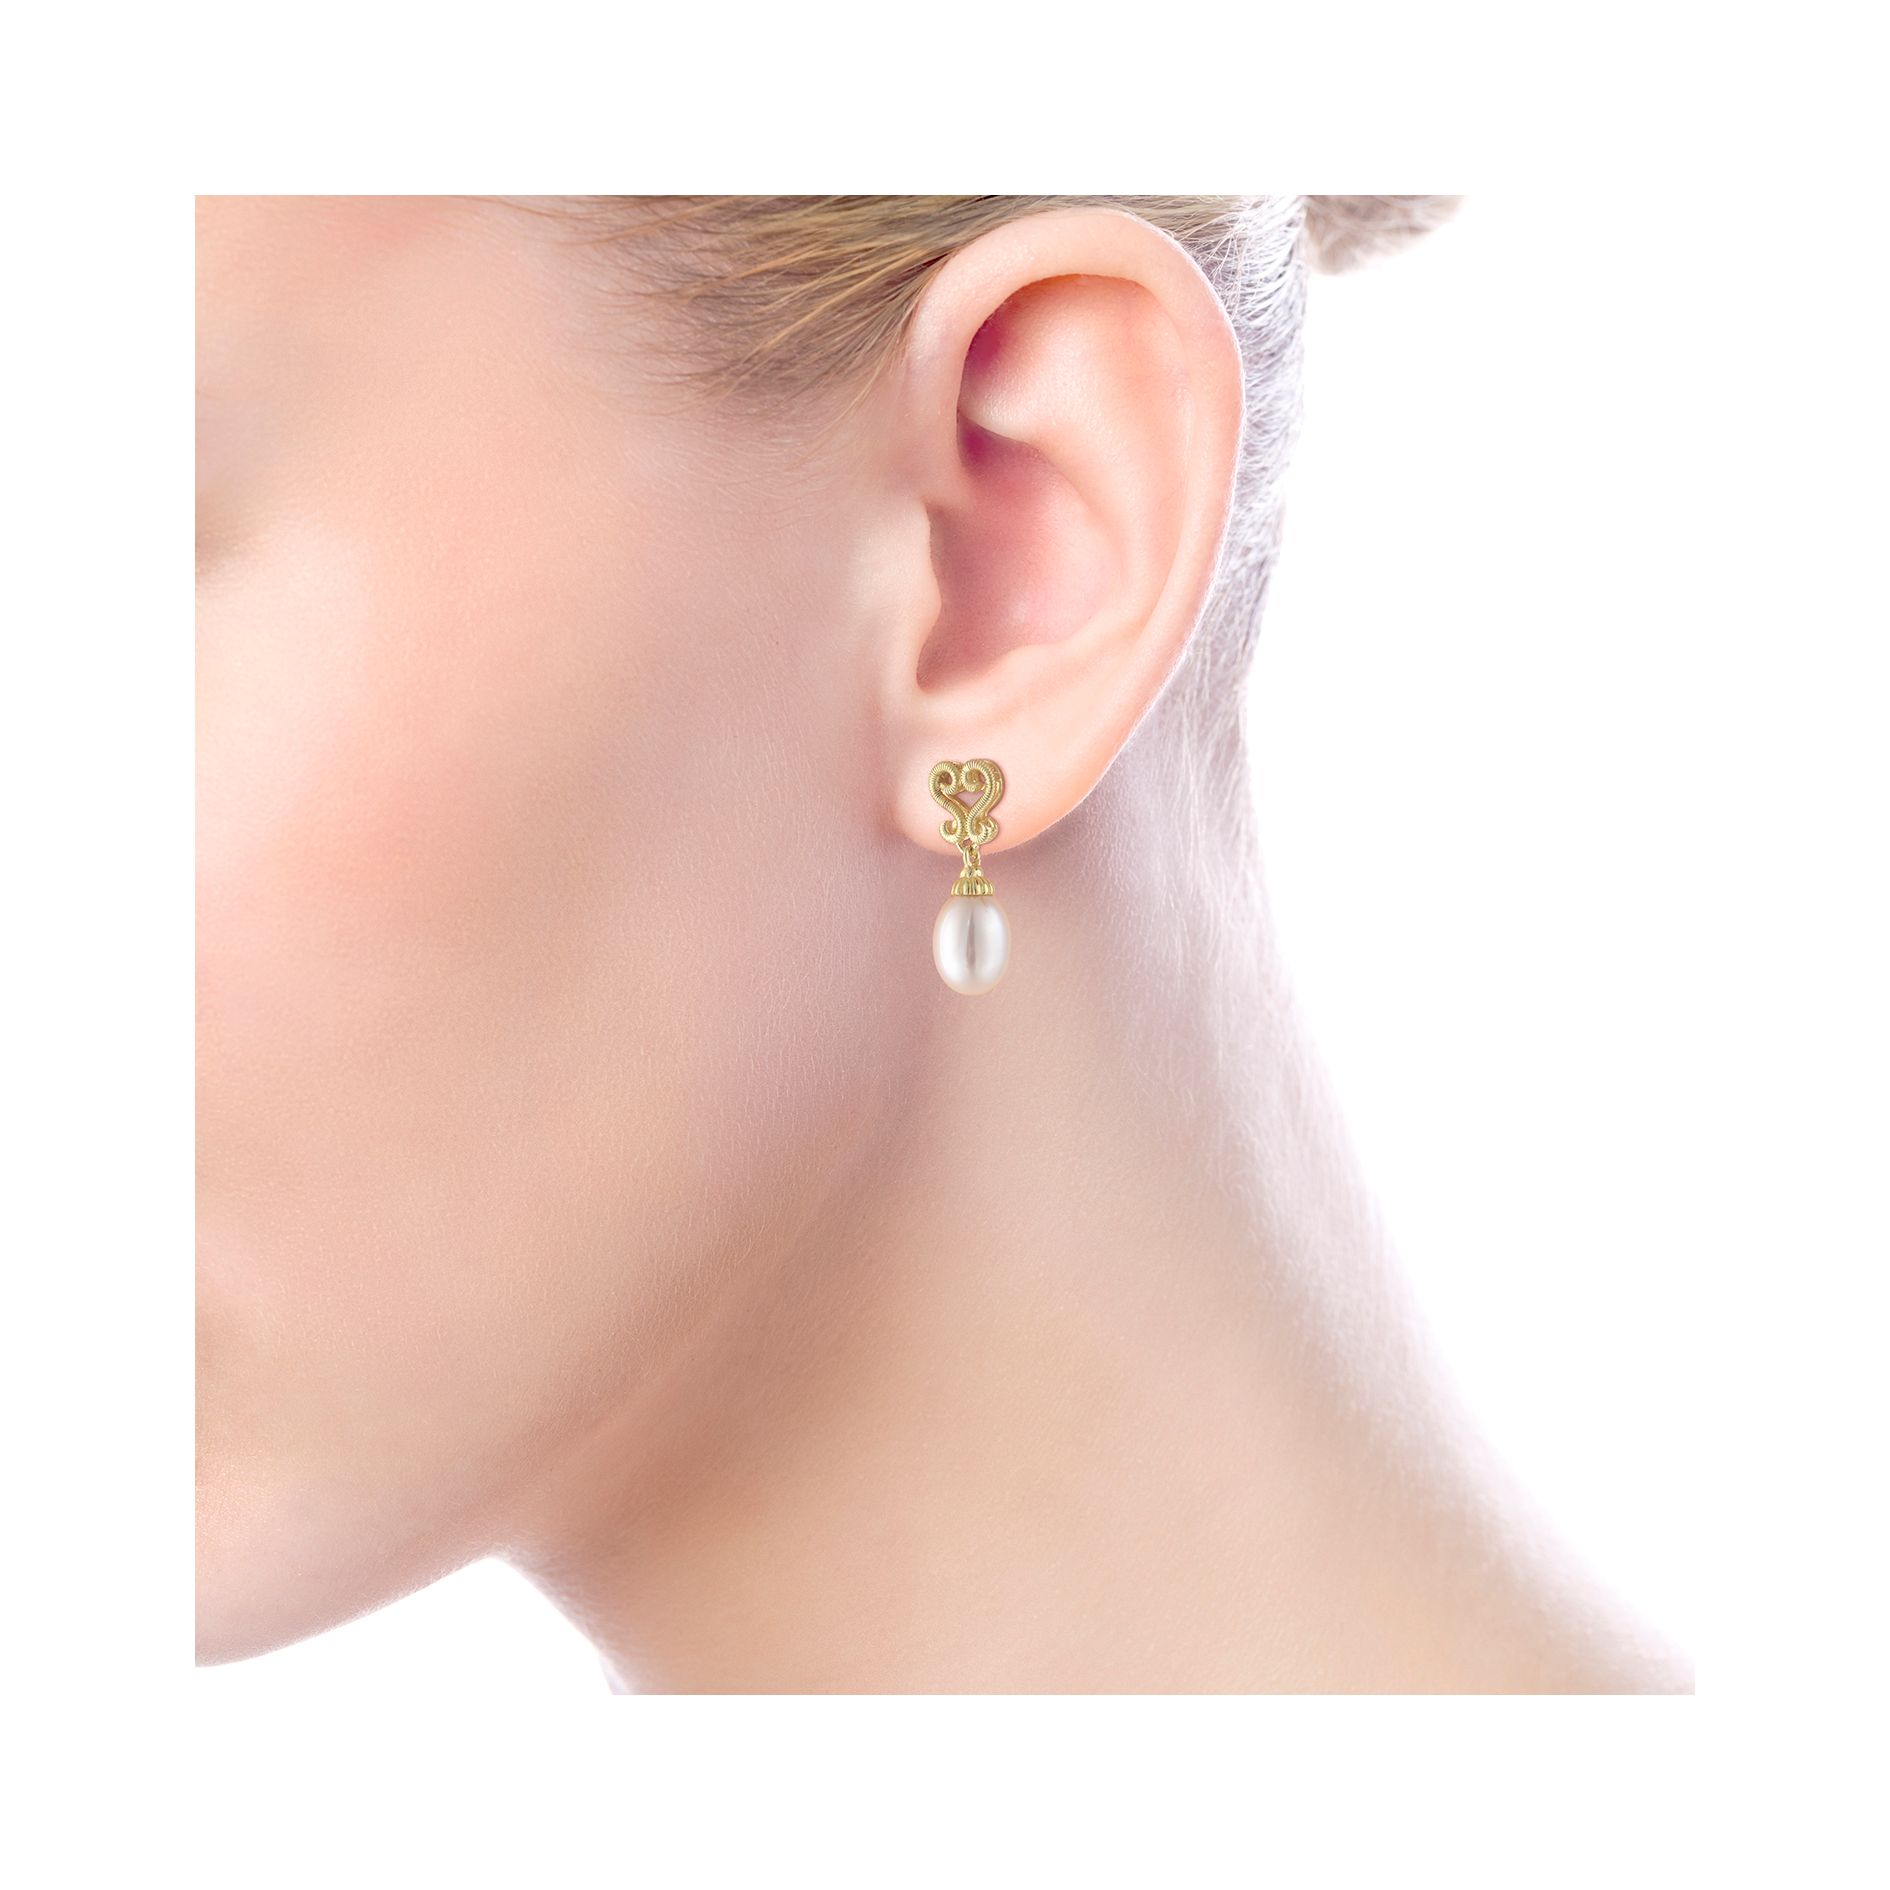 Earrings - YELLOW GOLD DROP CULTURED PEARL EARRINGS - image #4